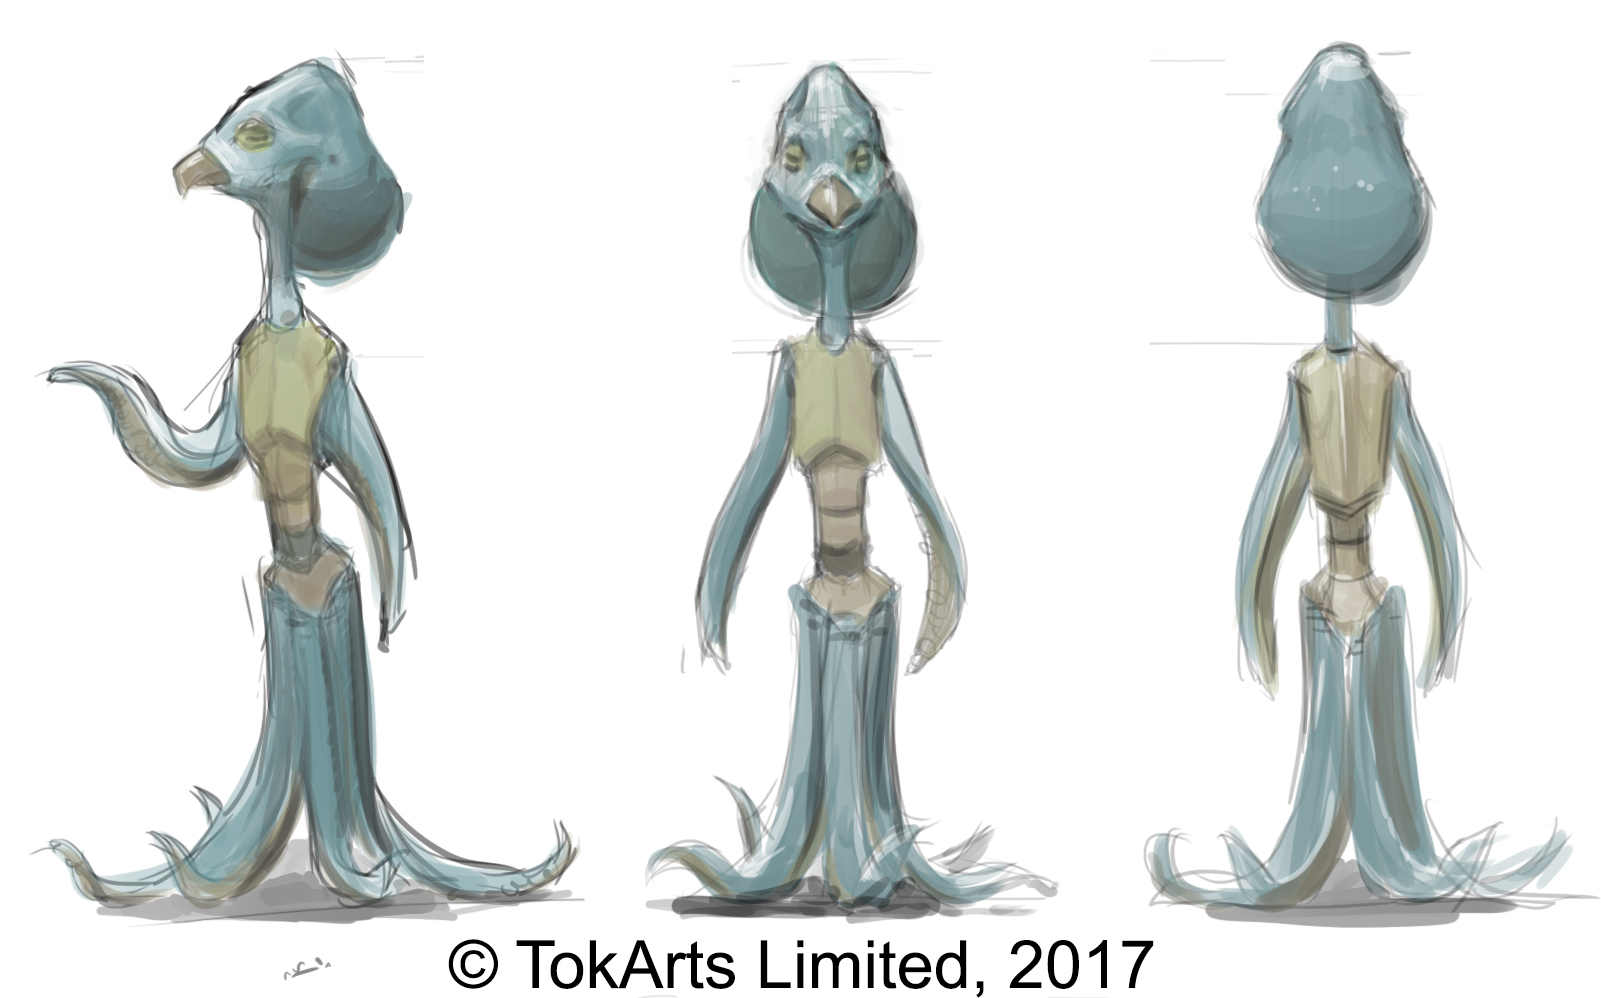 a turn-around of a Daran creature, naked